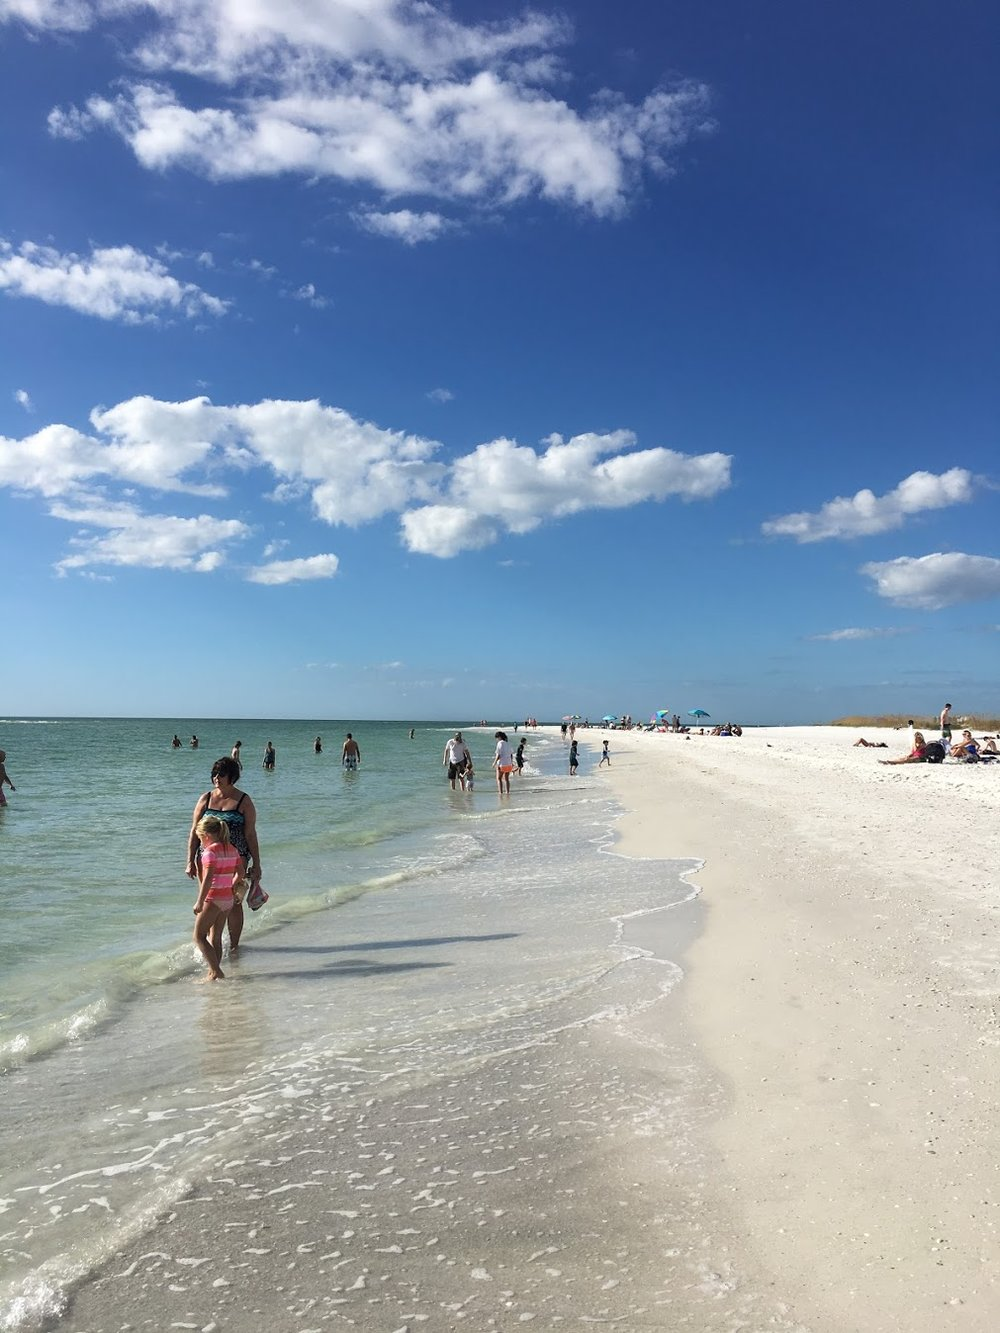 The beach at Longboat Key